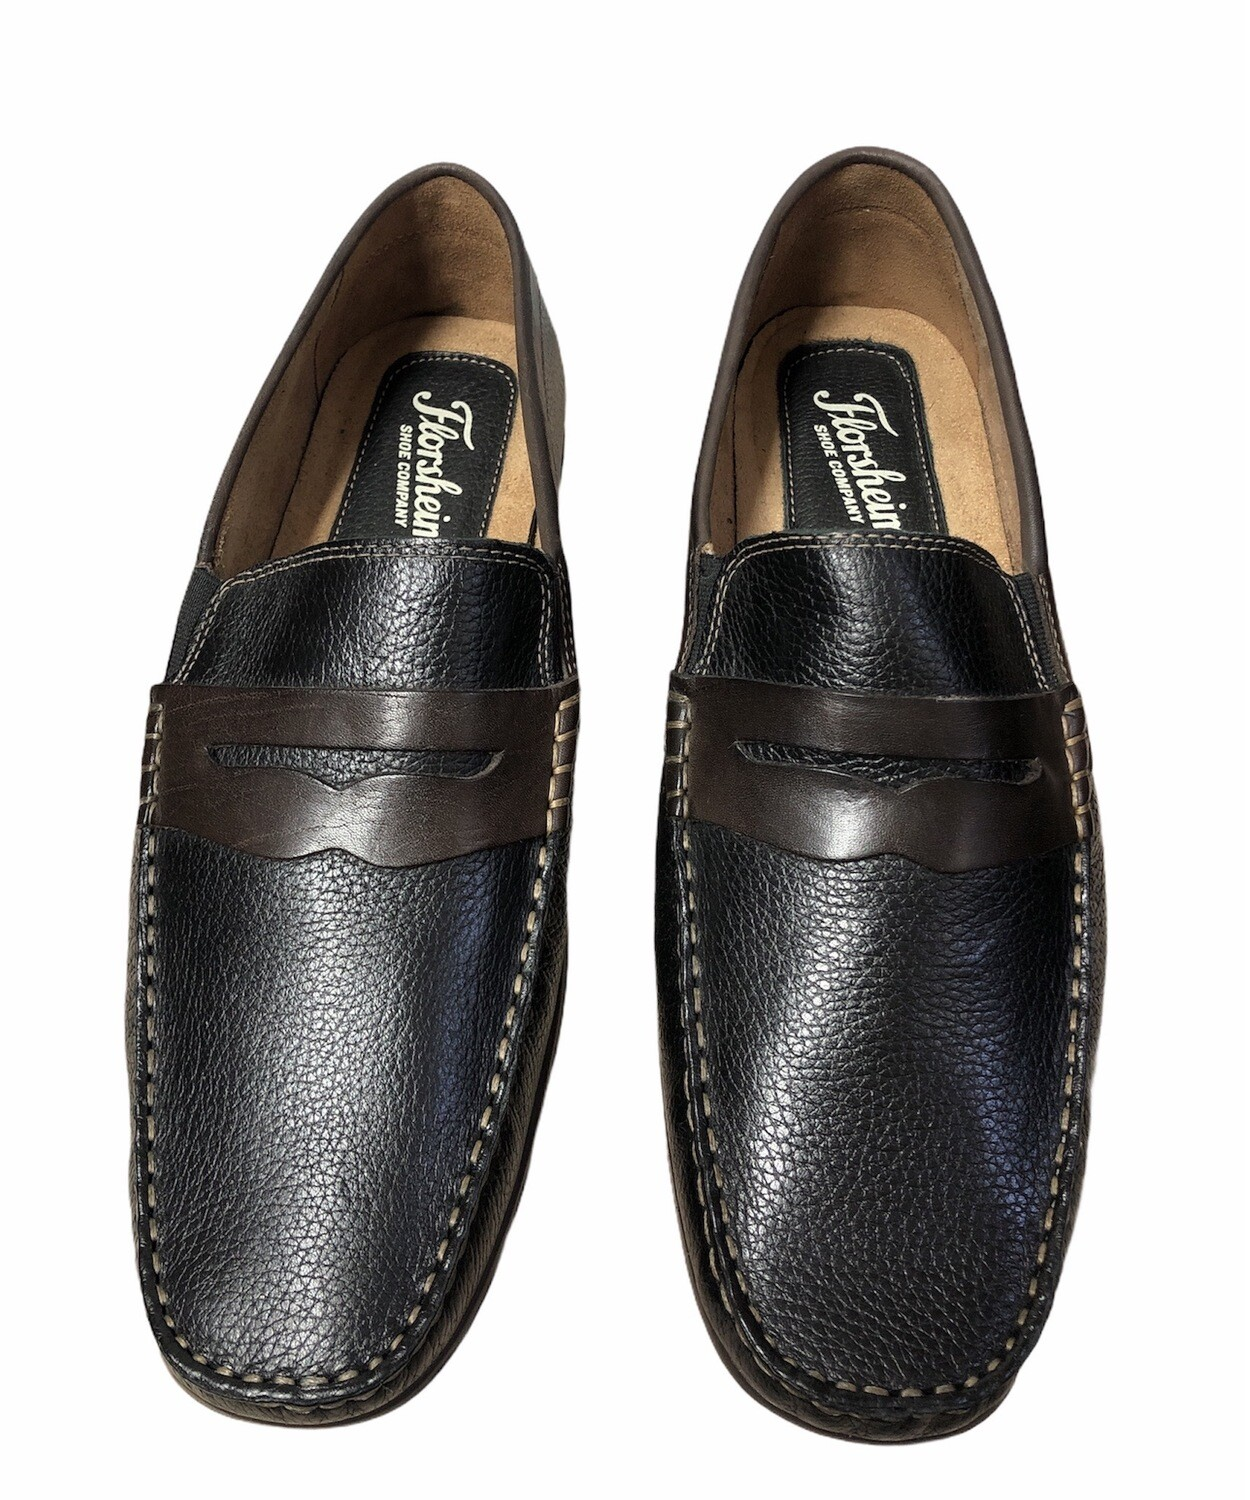 Mens FLORSHEIM Black & Brown Pebble Leather Driving Loafers size 11 W